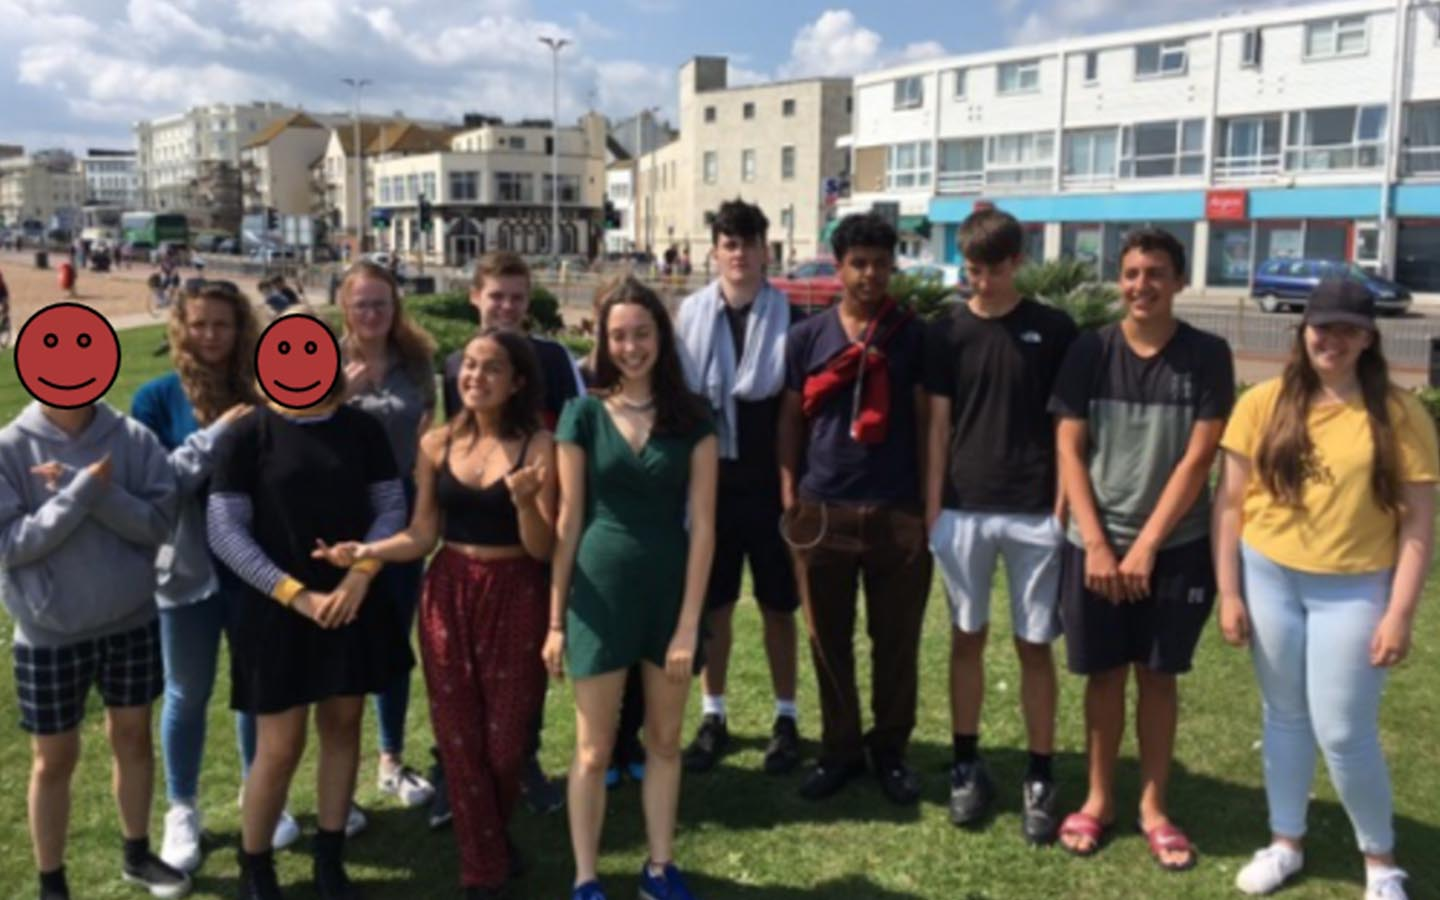 Members of Team One, on NCS in Hastings, gather for a group photo